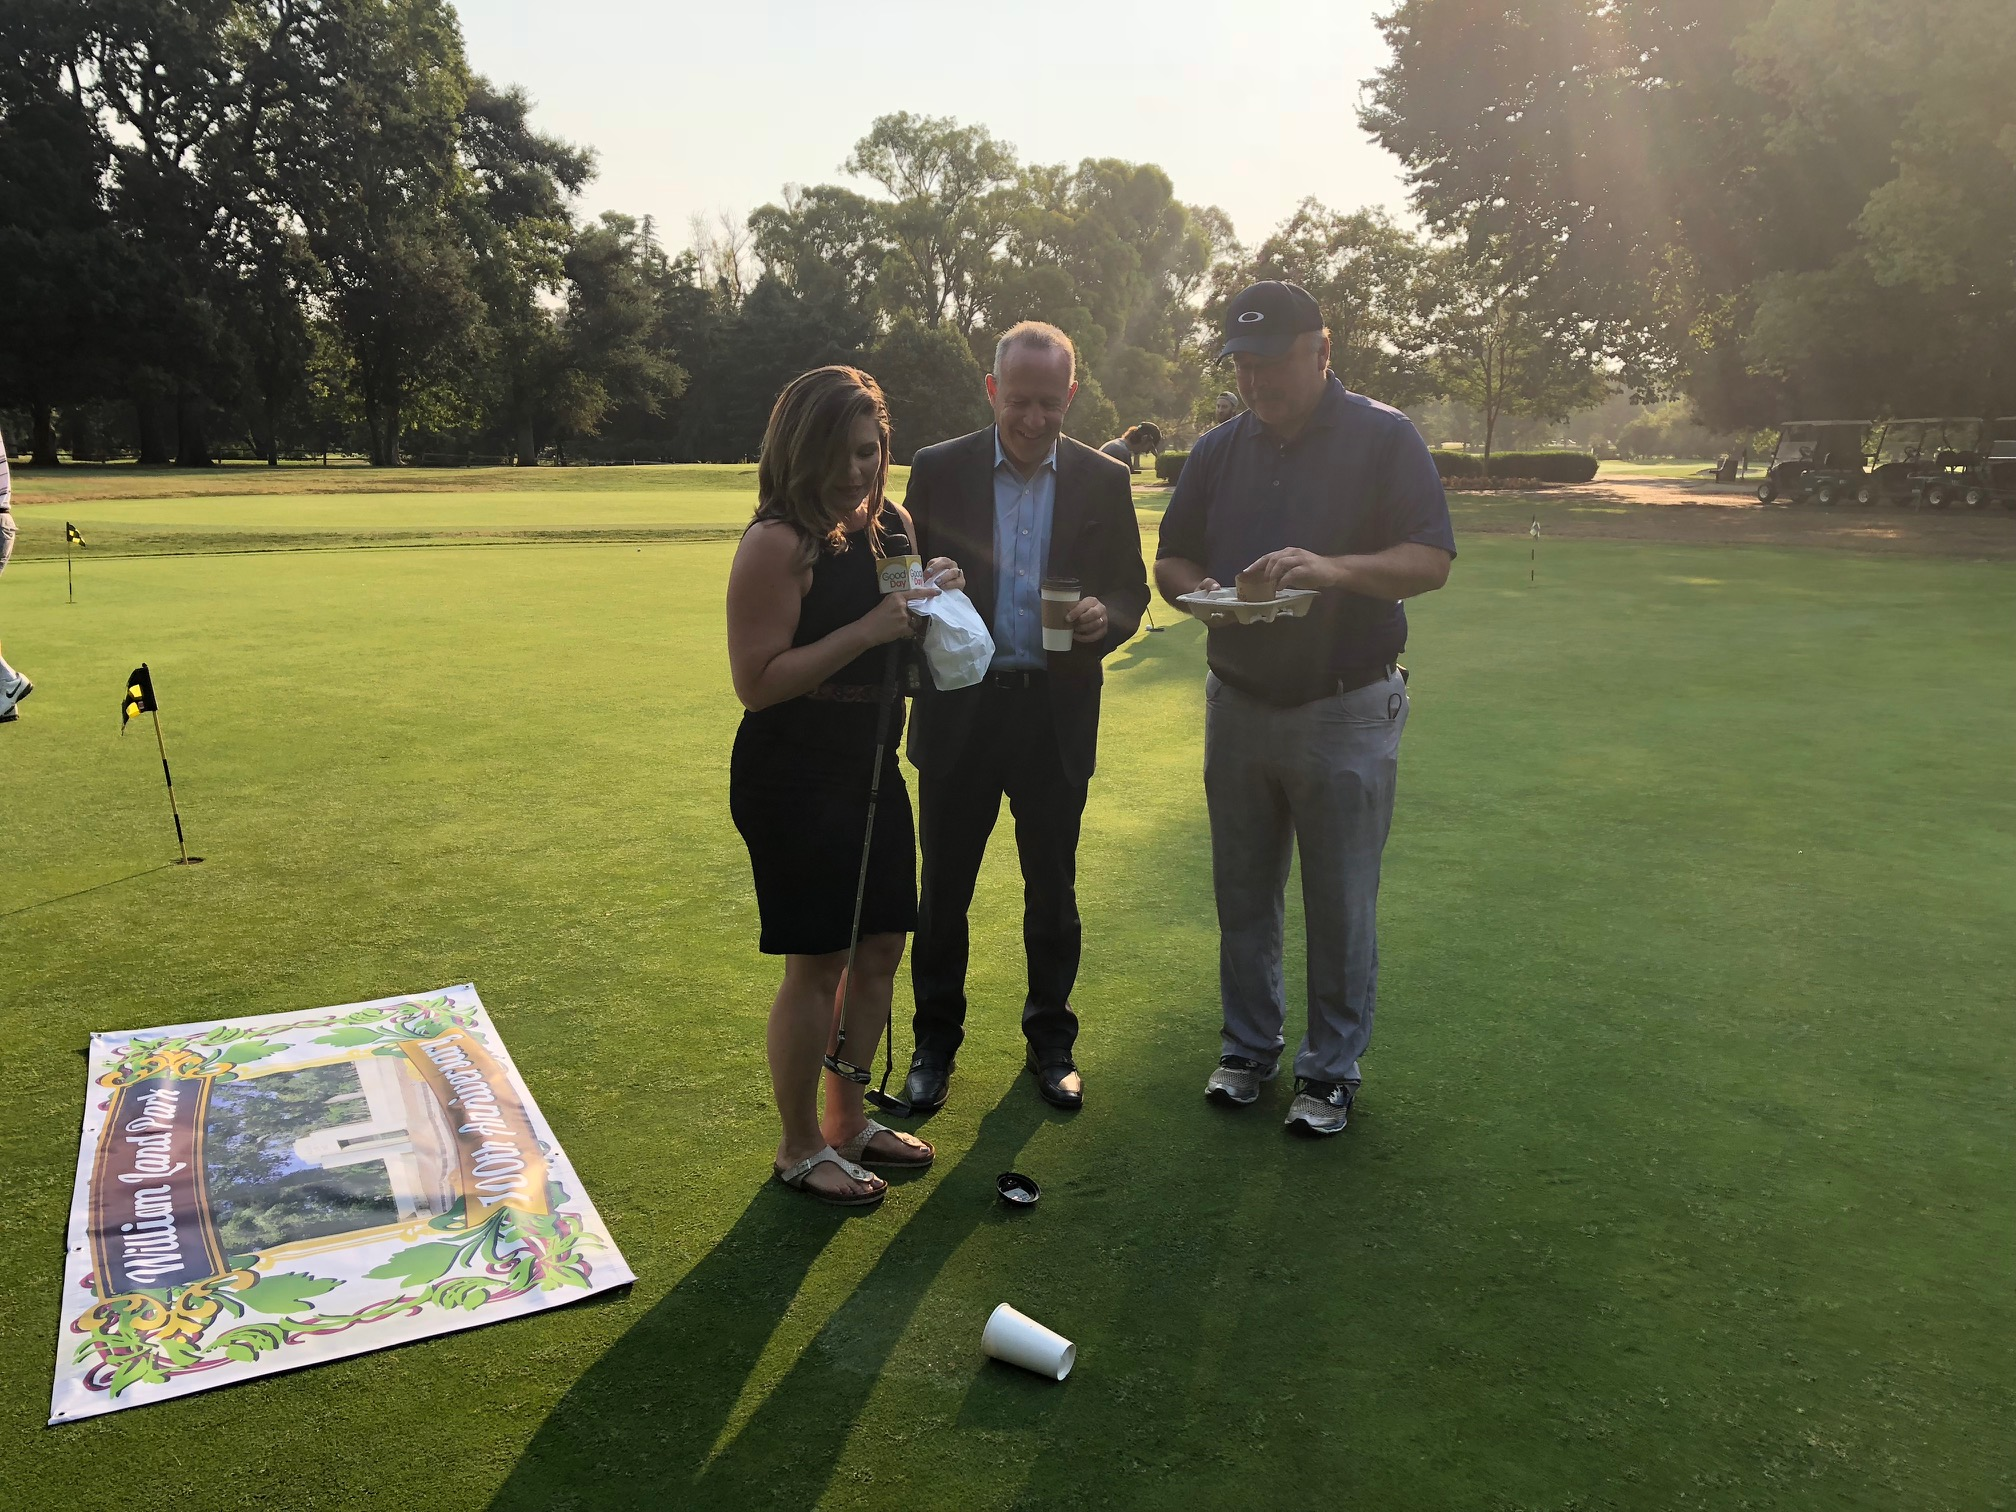 Things went awry when Bethany Crouch dropped her coffee on camera. But the group still got to have ice cream for breakfast. Vic's Ice Cream created the special flavor, mint chip cookie, just for the Land Park anniversary. To the right is golf course General Manager Hank Vereschzagin.